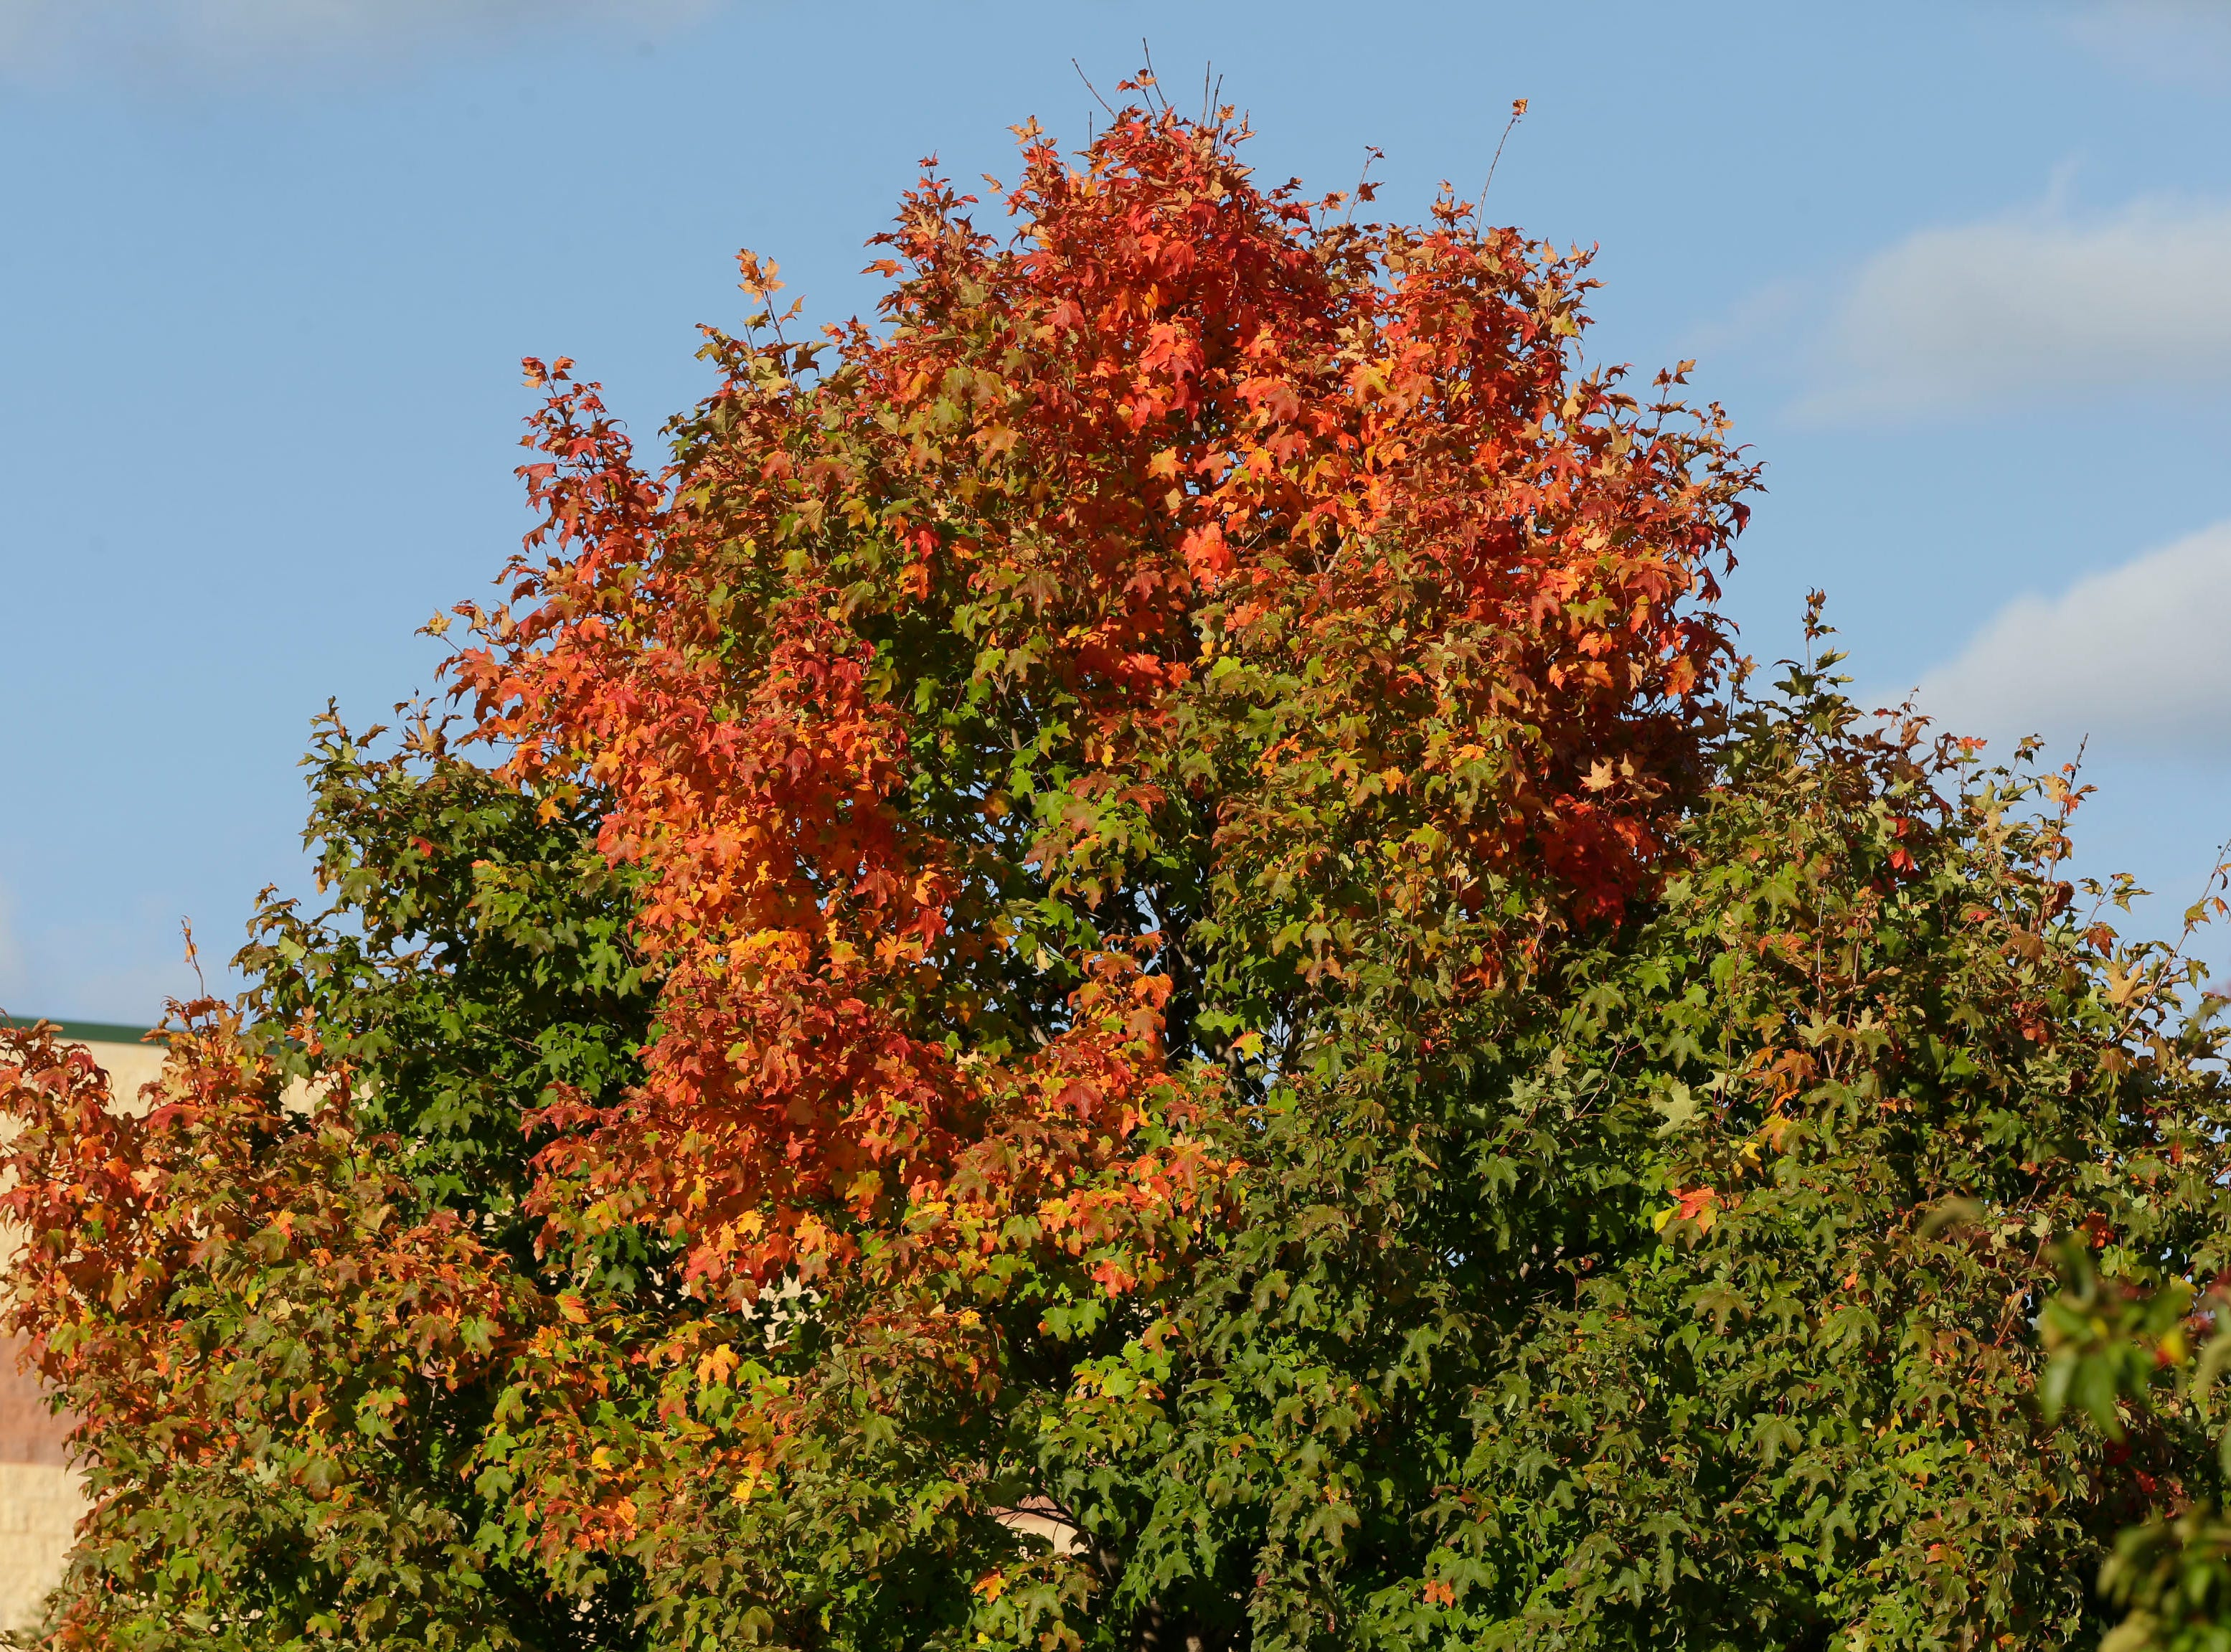 The top of a tree along Taylor Drive, Saturday, October 13, 2018, in Sheboygan, Wis.